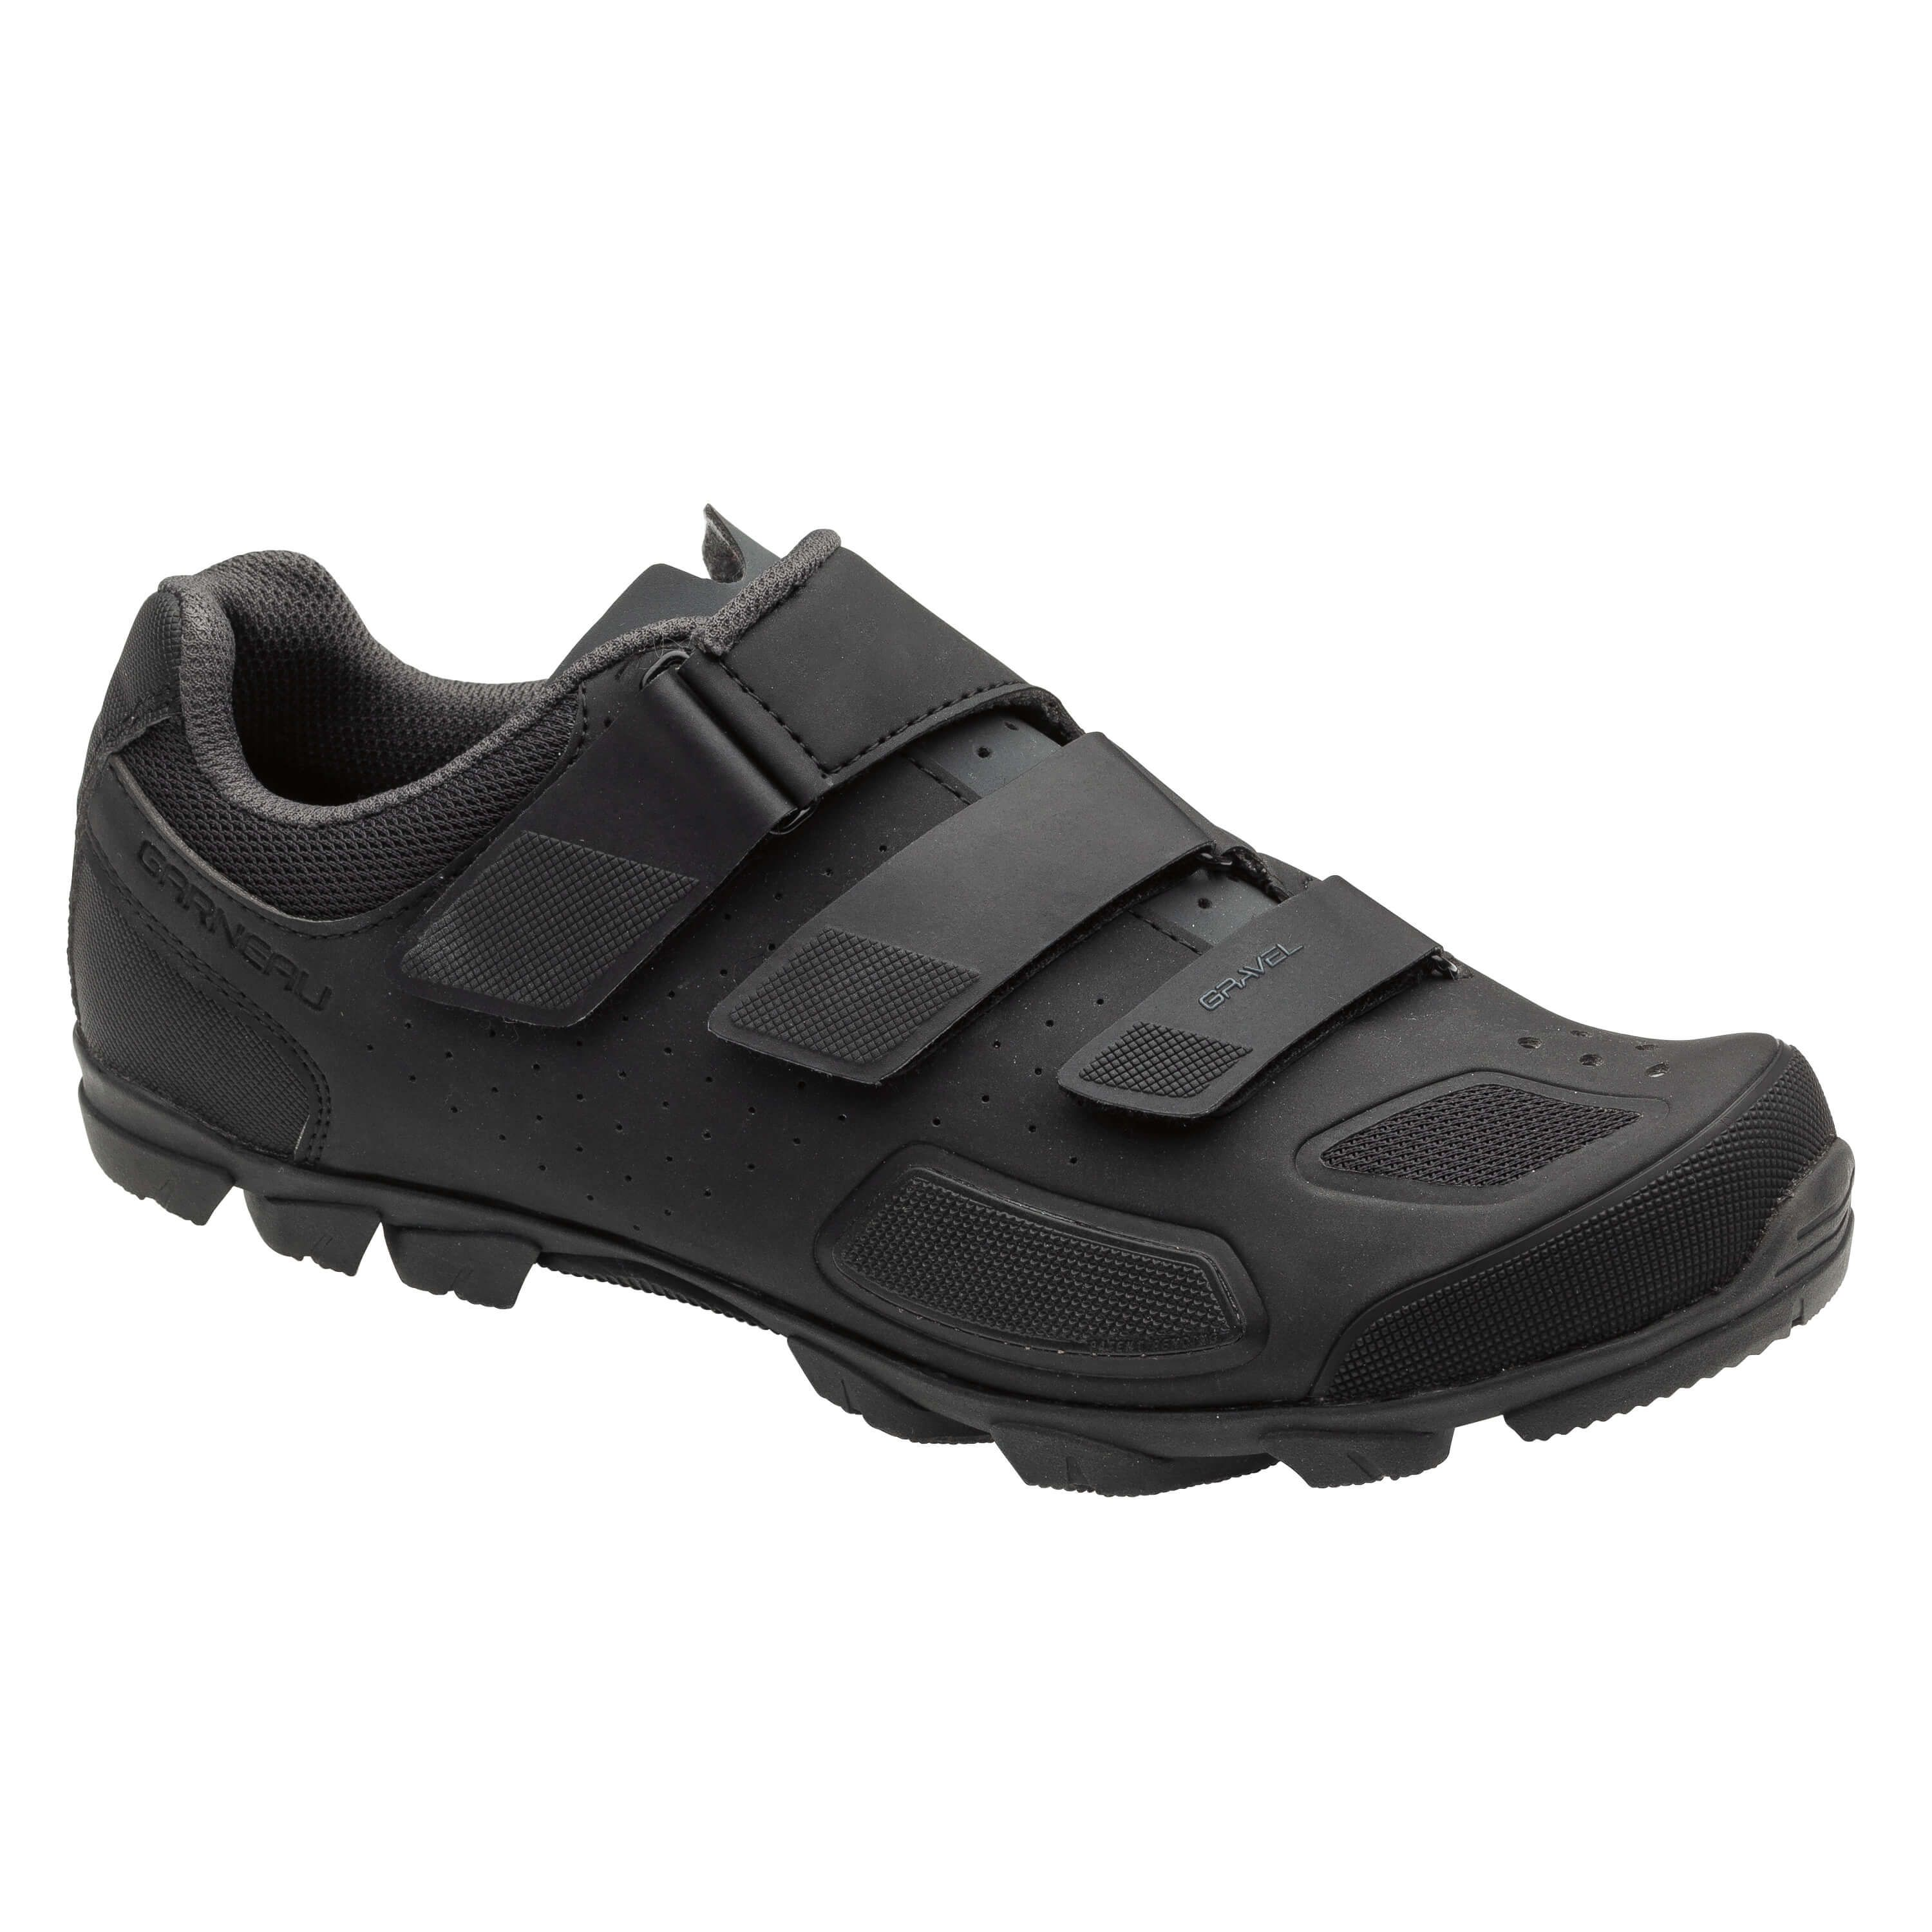 Gravel II Cycling Shoes for Men